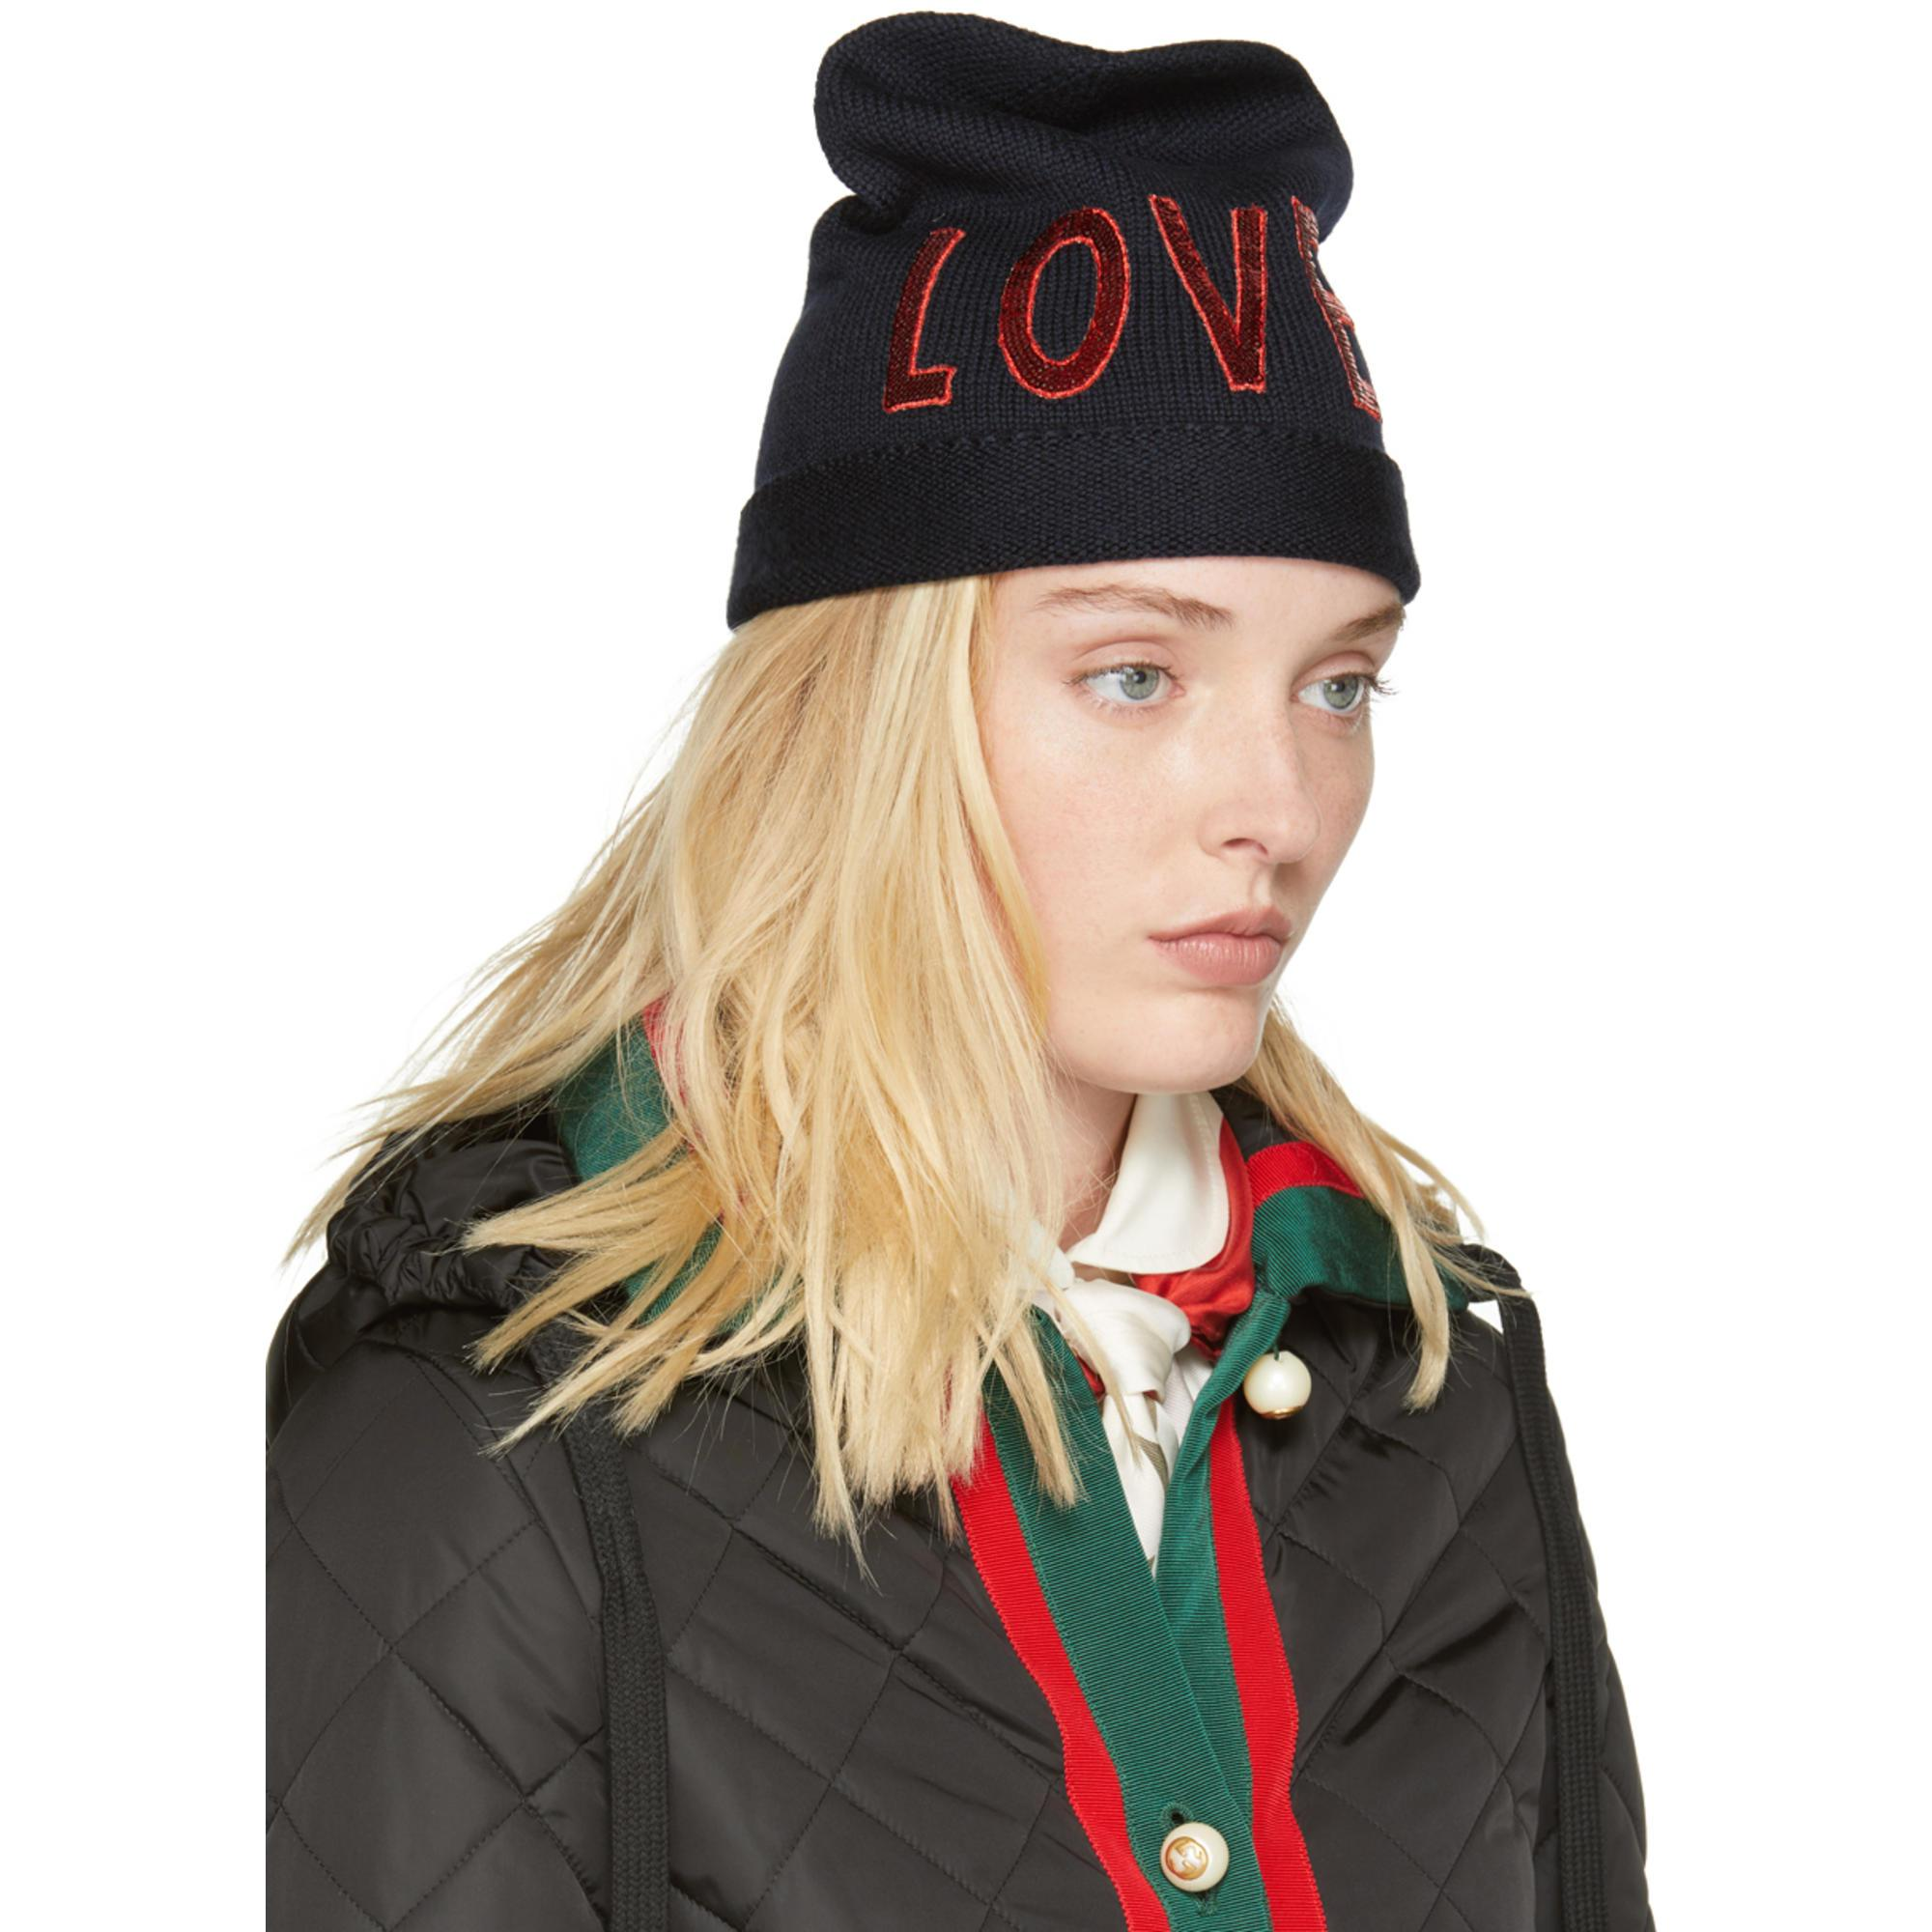 986d01903 Gucci Navy Wool 'loved' Beanie in Blue - Lyst